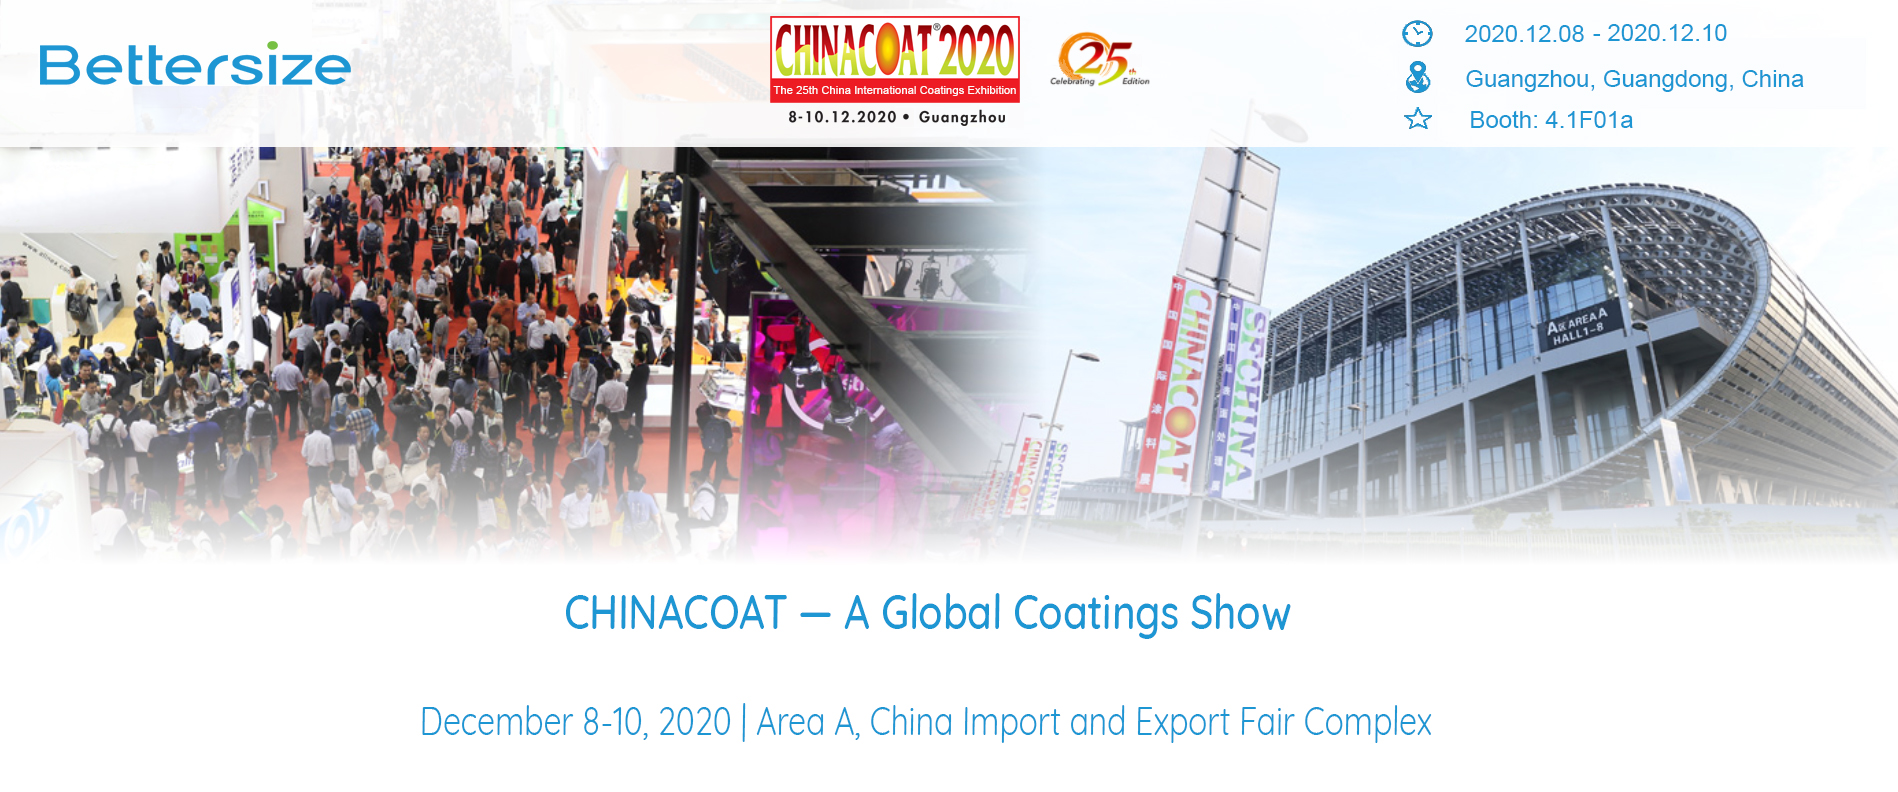 CHINACOAT 2020 on Dec 8-10, 2020